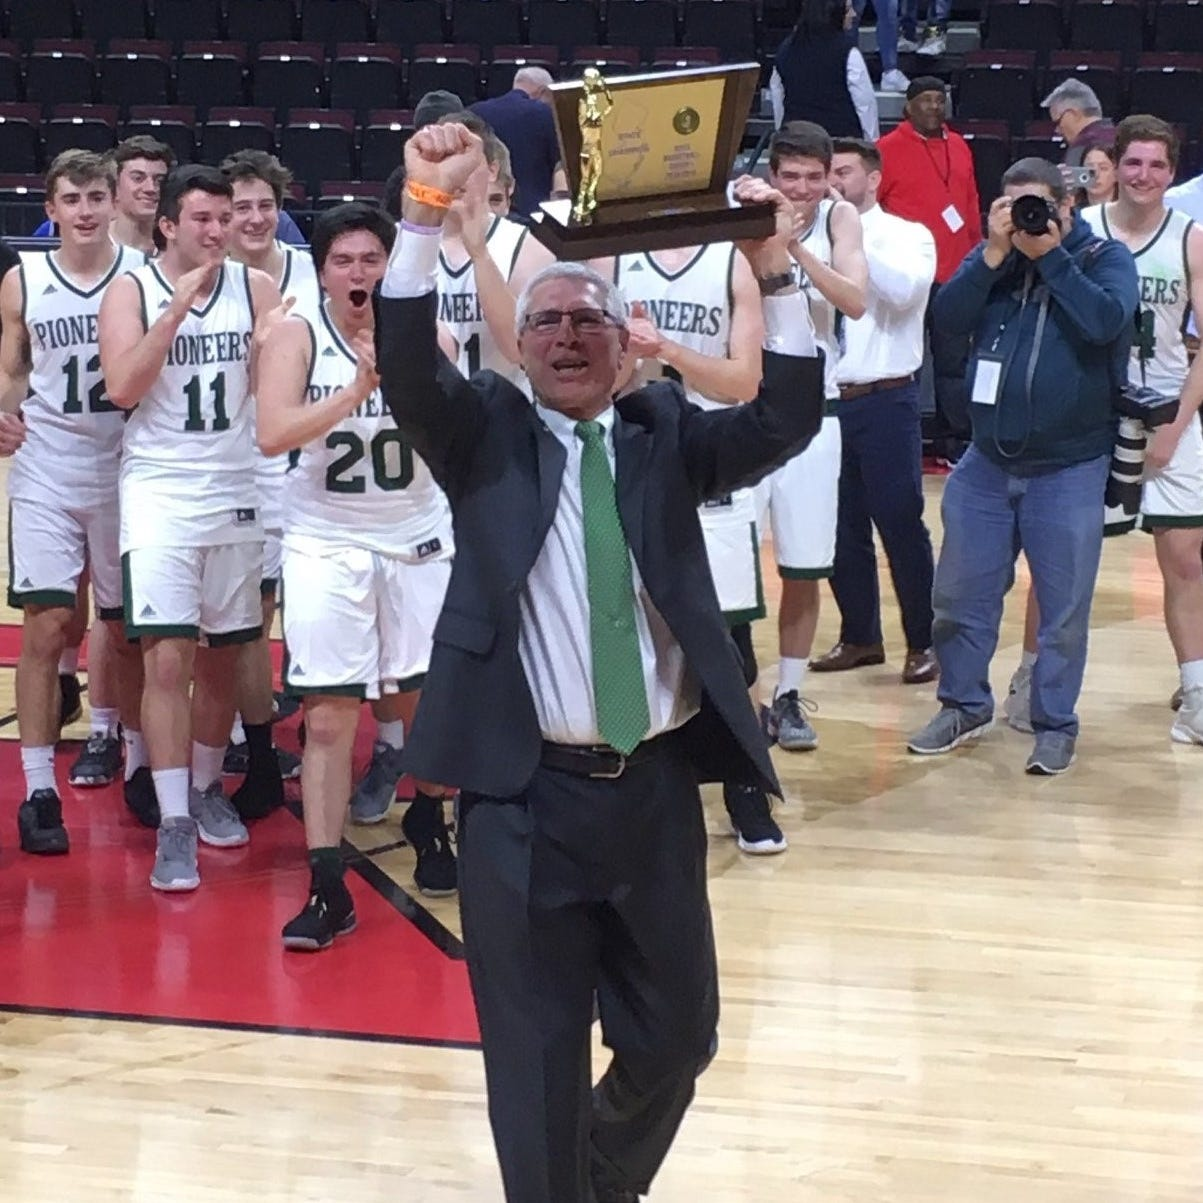 NJ Boys Basketball: New Providence's Cattano is CN Coach of the Year